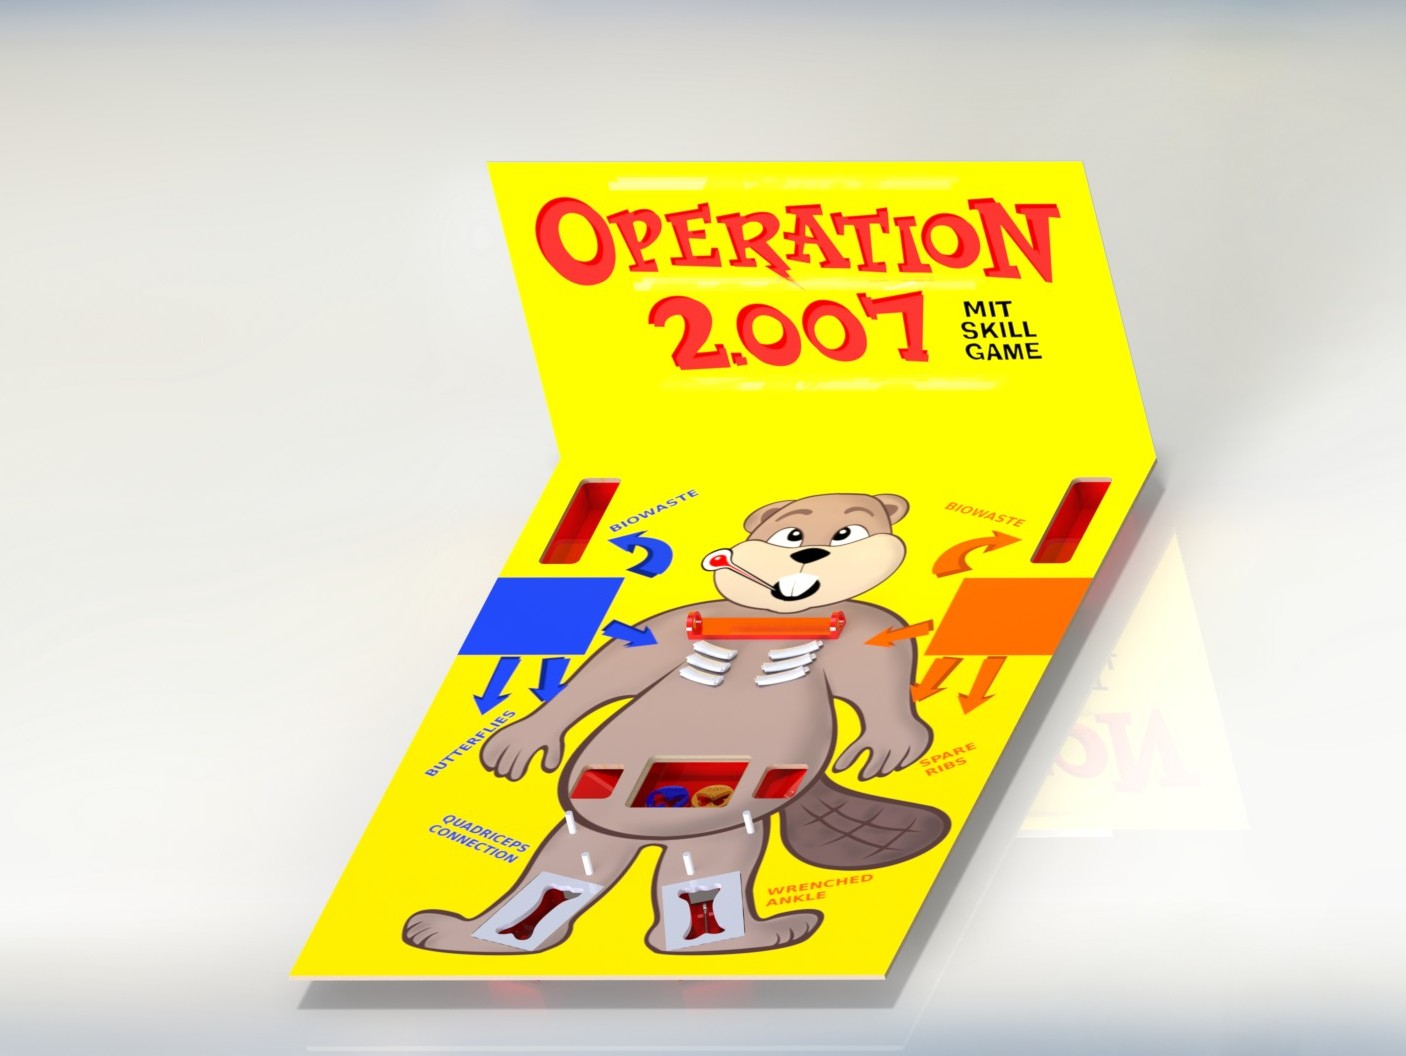 operation game board for mit course 2.007